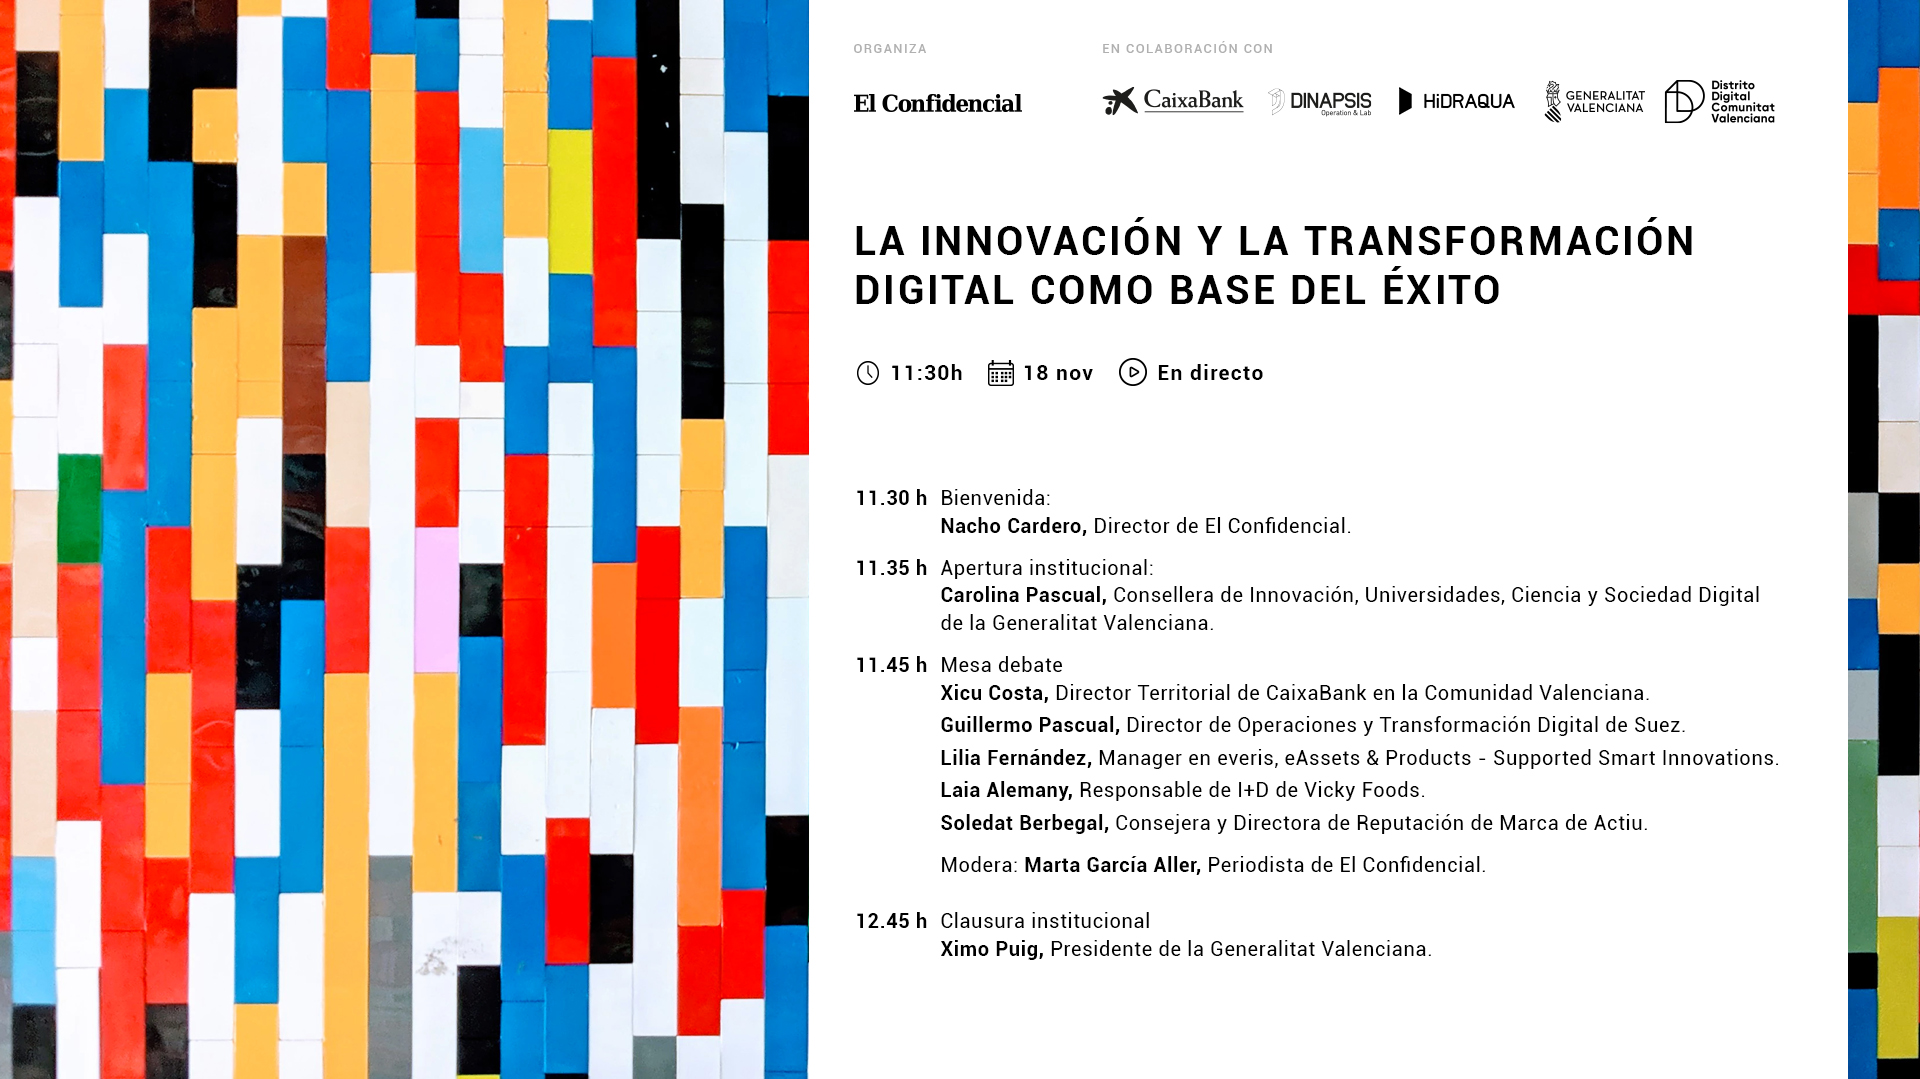 innovacion-transformacion-digital-base-exito